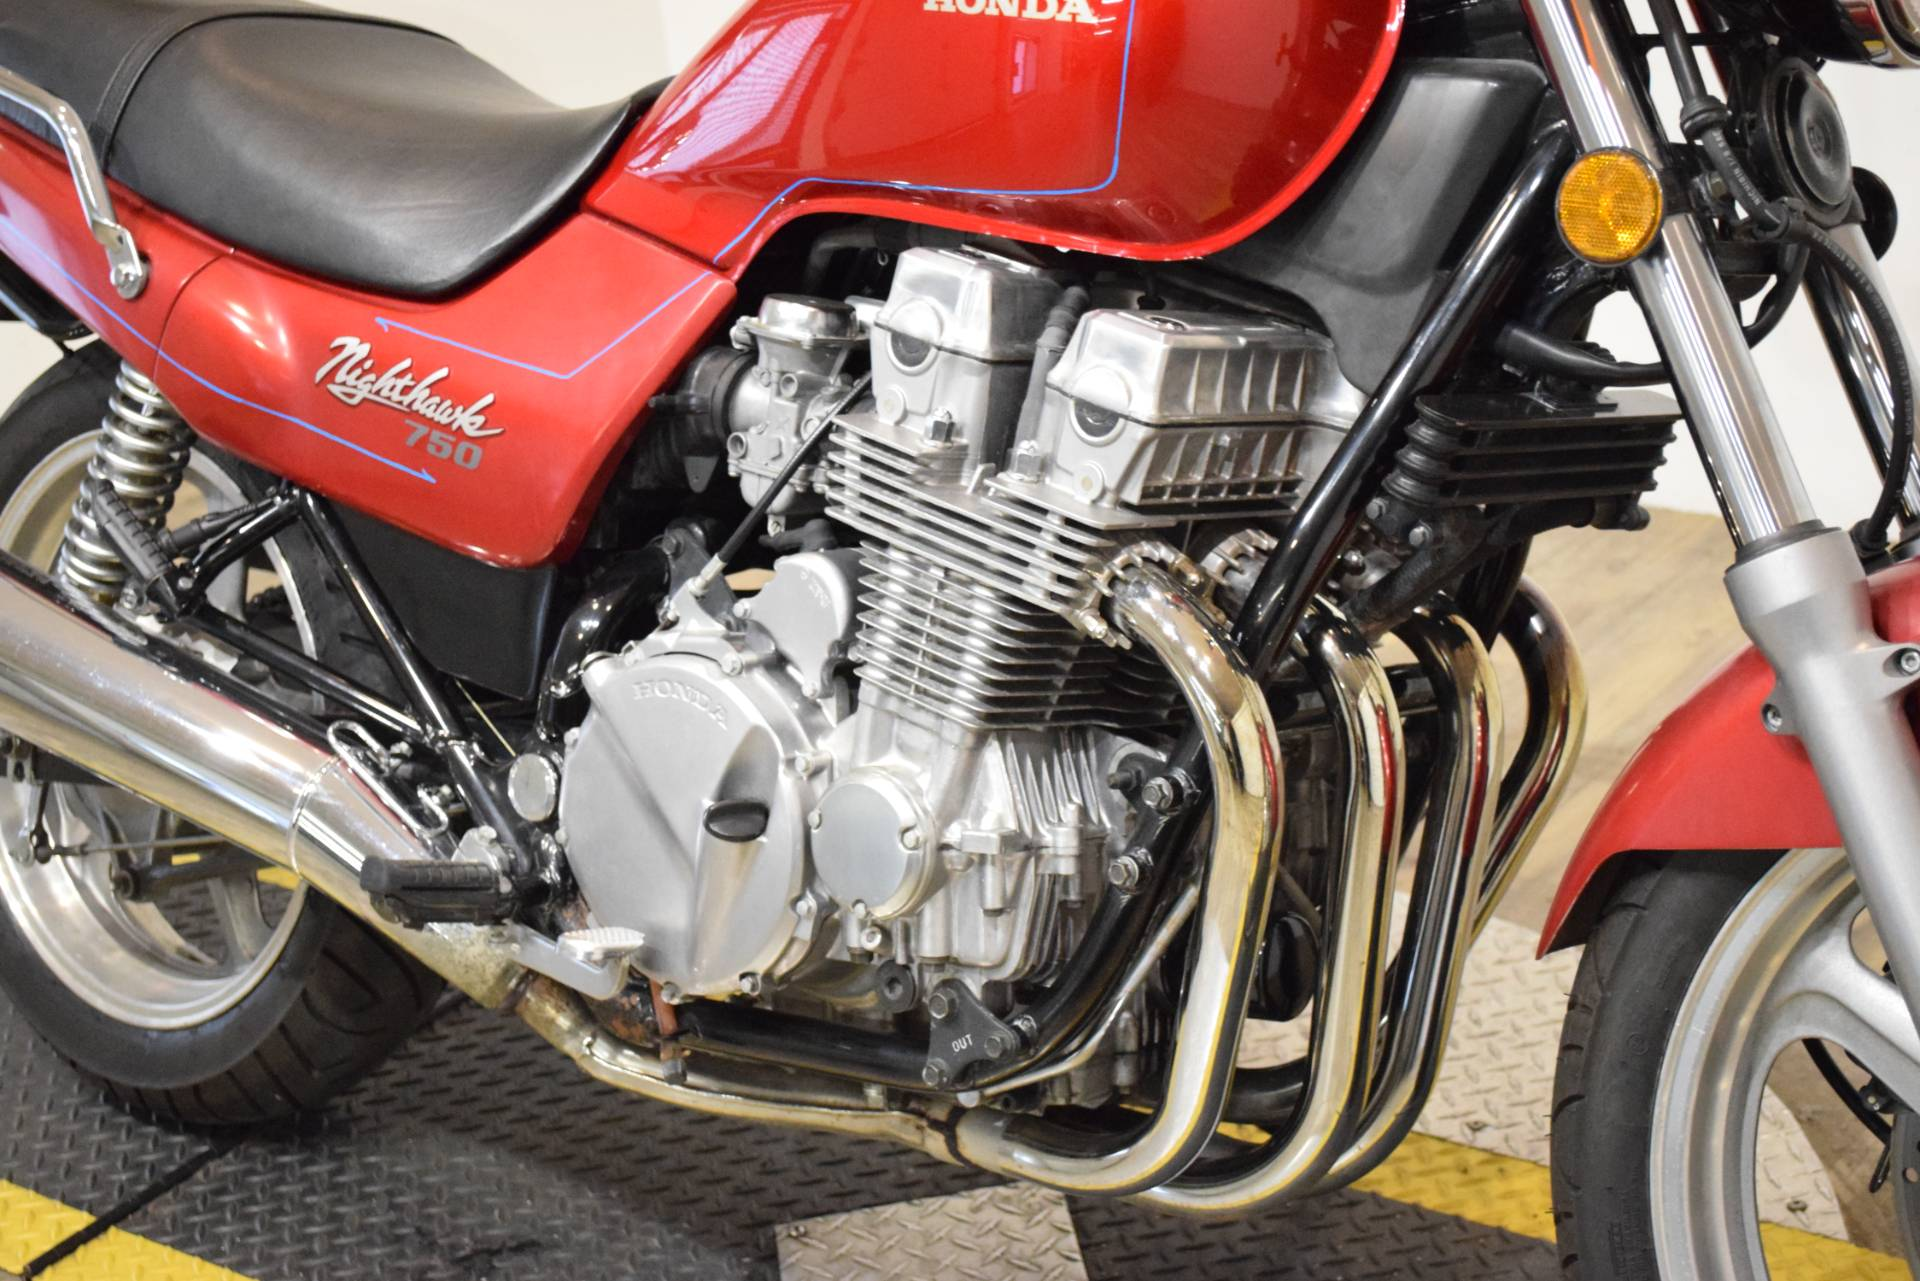 1992 Honda Nighthawk 750 in Wauconda, Illinois - Photo 4